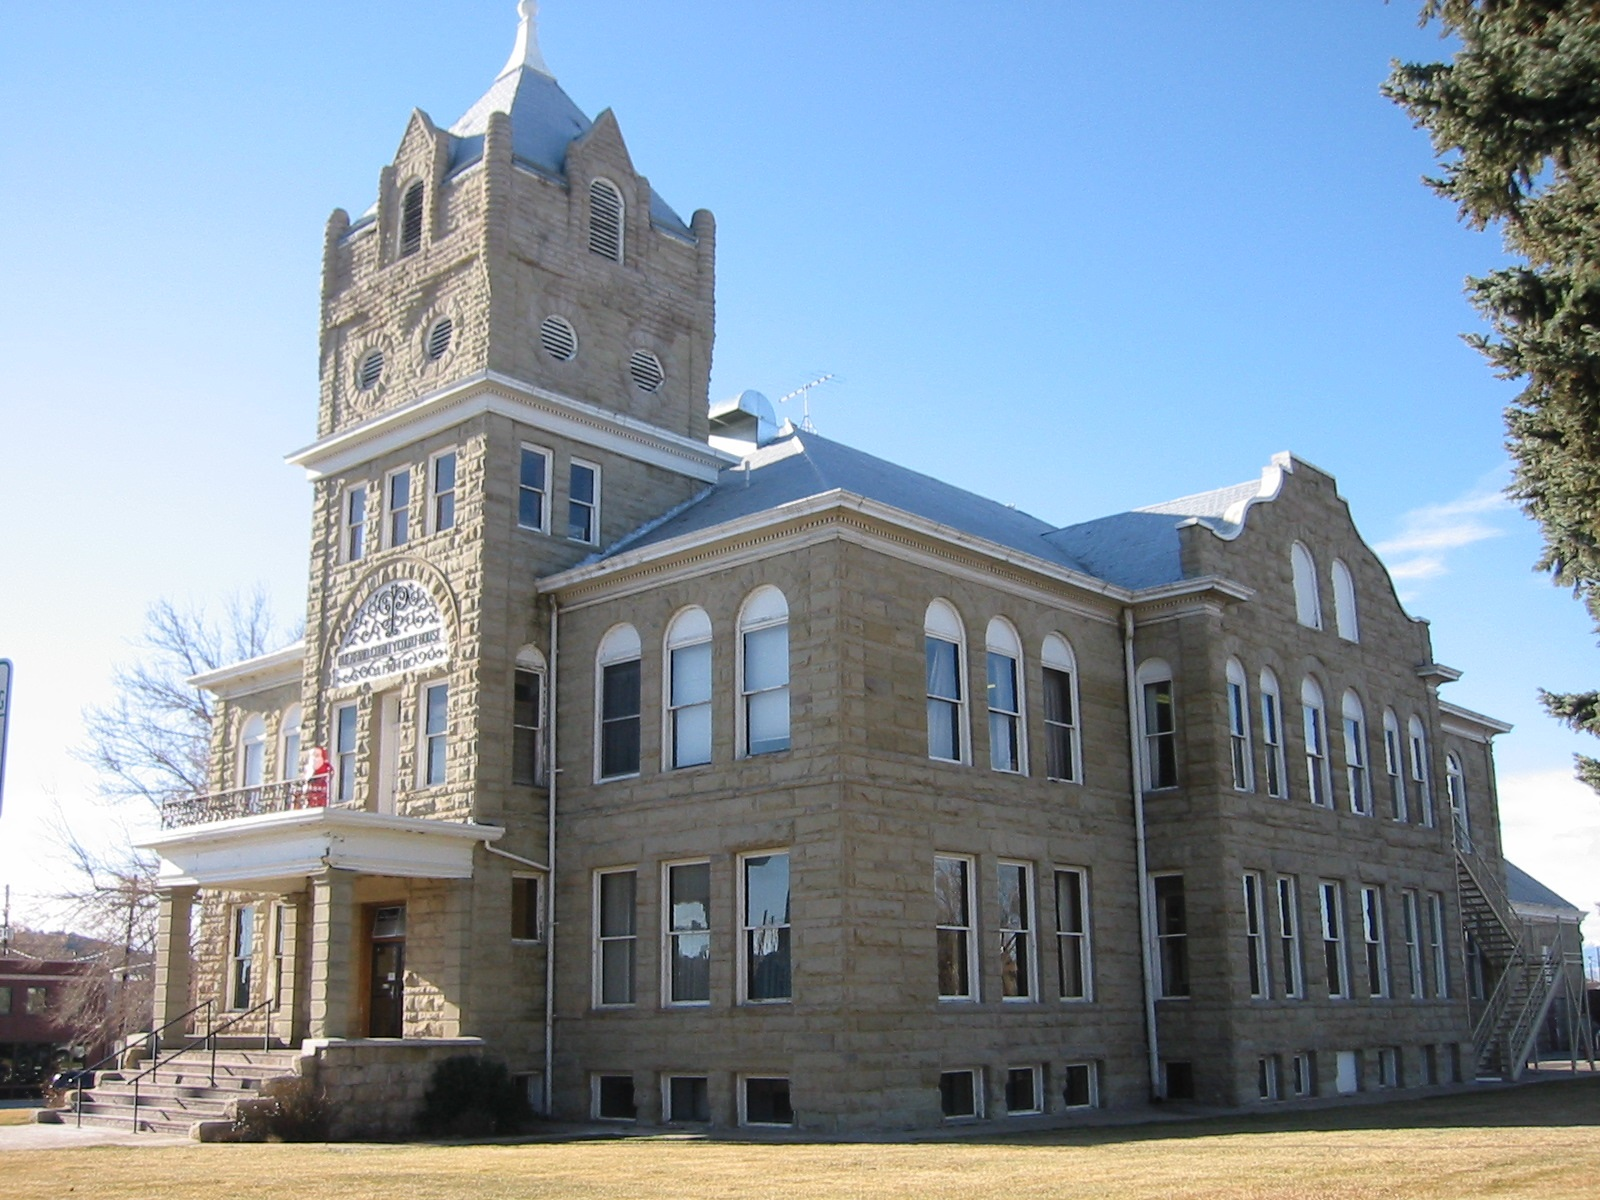 A photo of the historic Huerfano County Courthouse and Jail, a stone, multi-level building with a prominent tower.